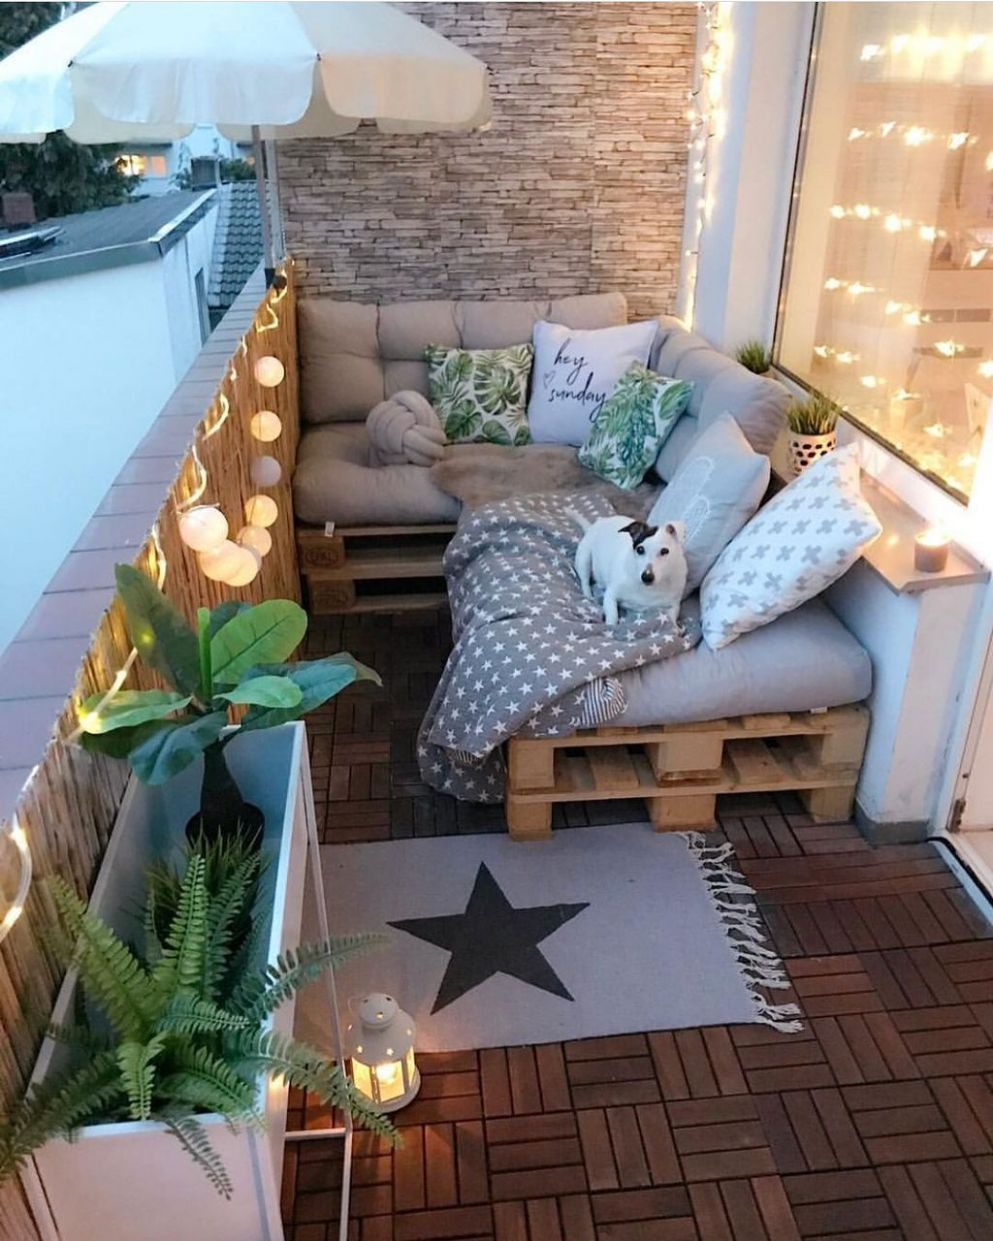 10 Balcon Apartment Design Ideas with Floral Decorations That Make ..